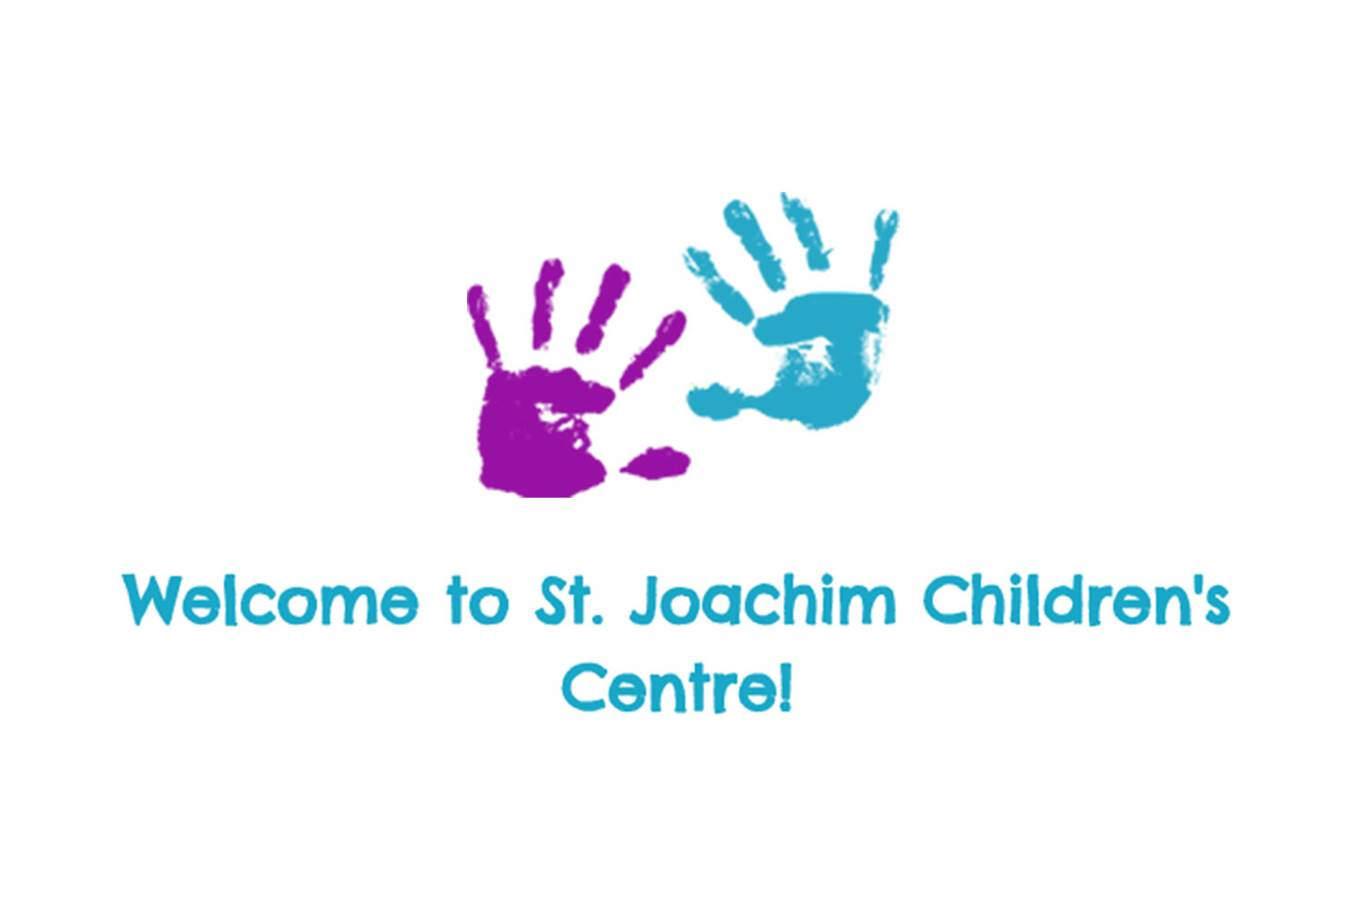 St Joachim Children's Centre